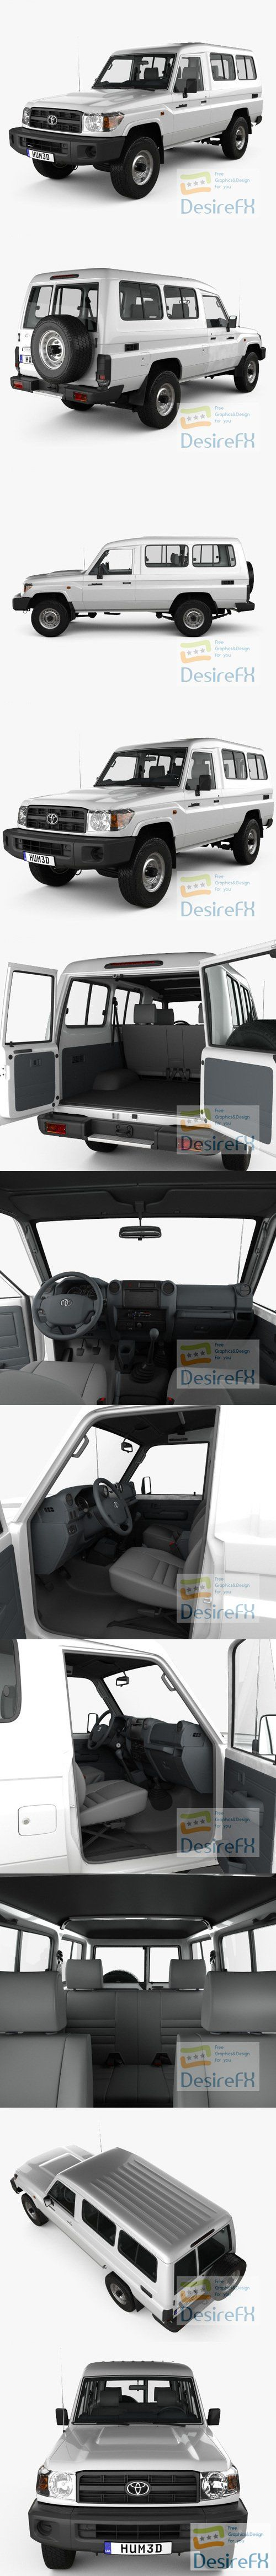 Toyota Land Cruiser Wagon with HQ interior 2010 3D Model